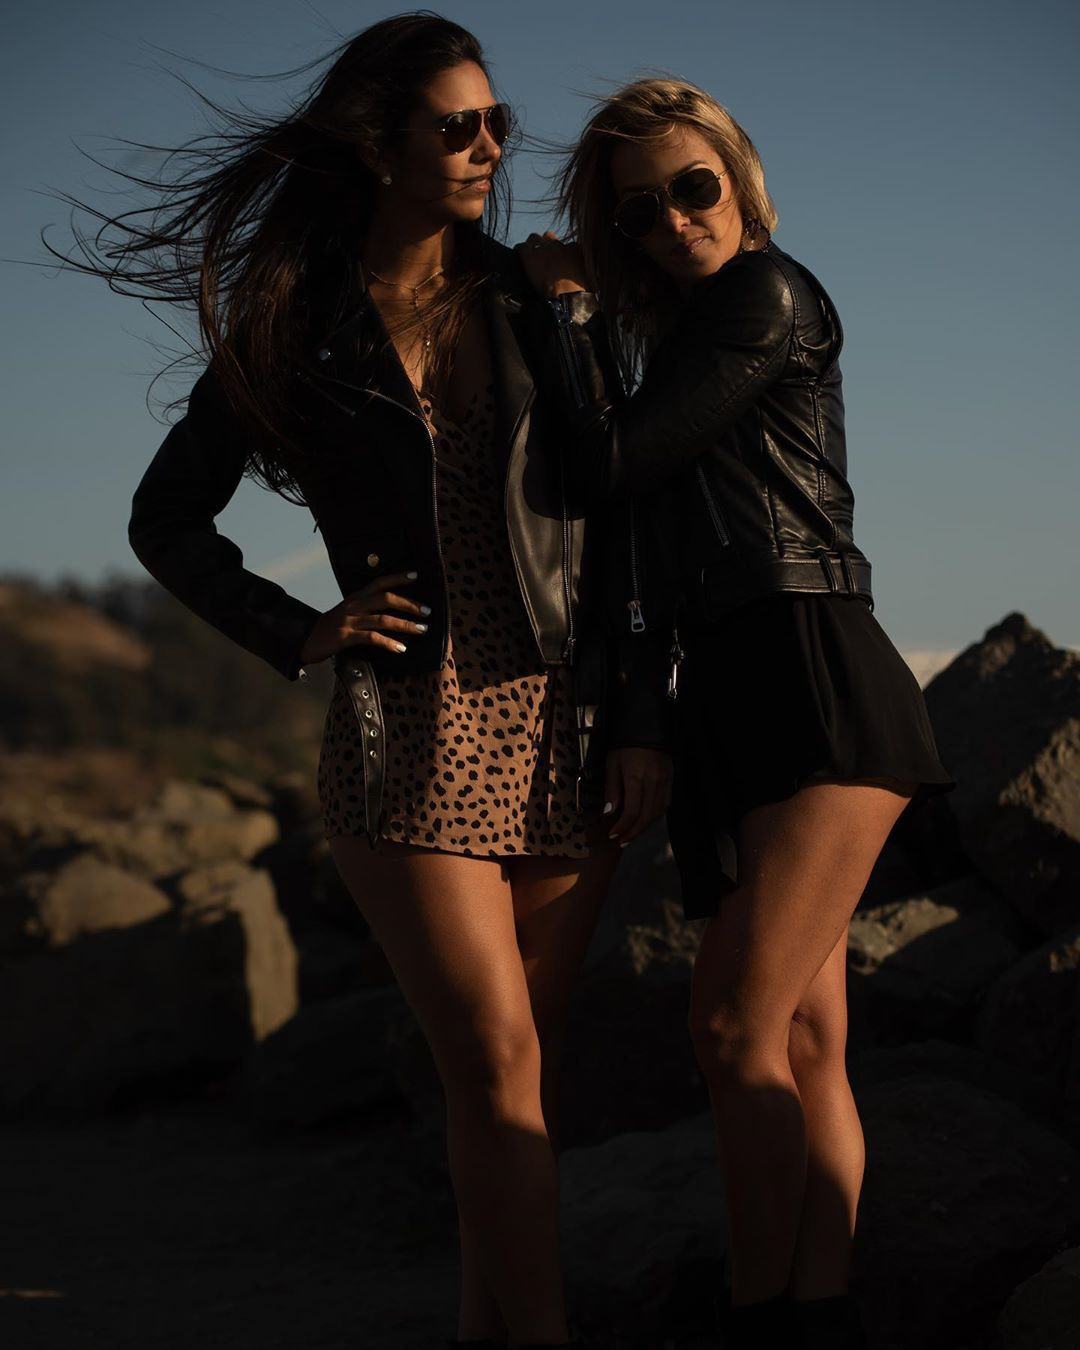 black colour outfit with leather leather, best photoshoot ideas, smooth legs